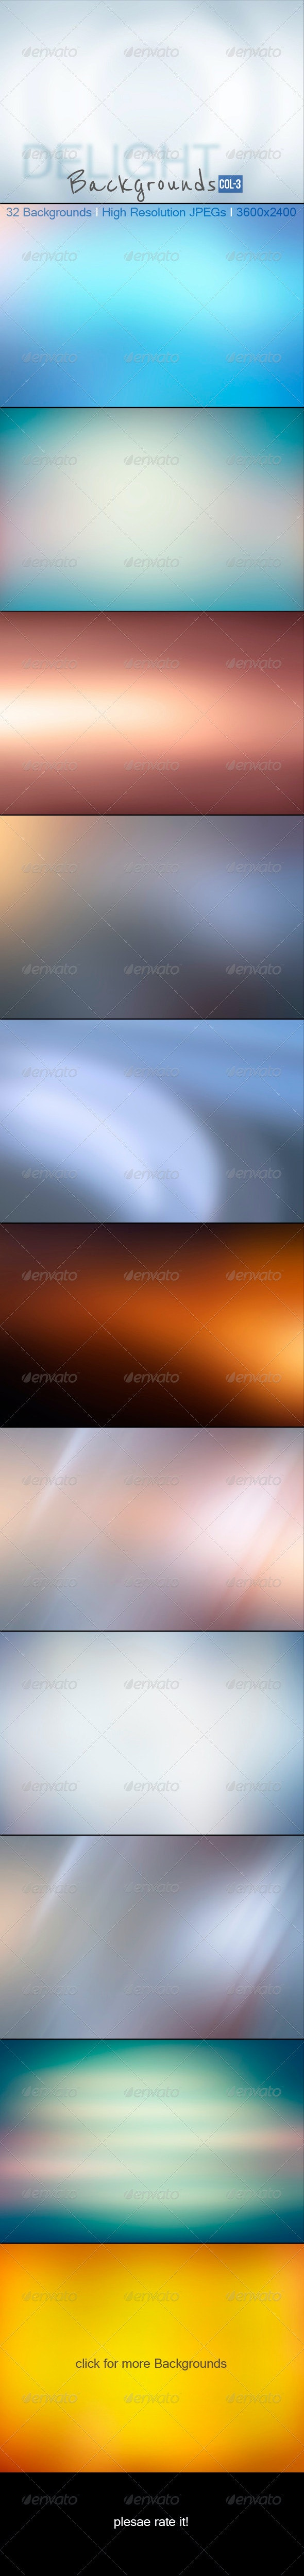 Delight Backgrounds_Vol-3 - Backgrounds Graphics